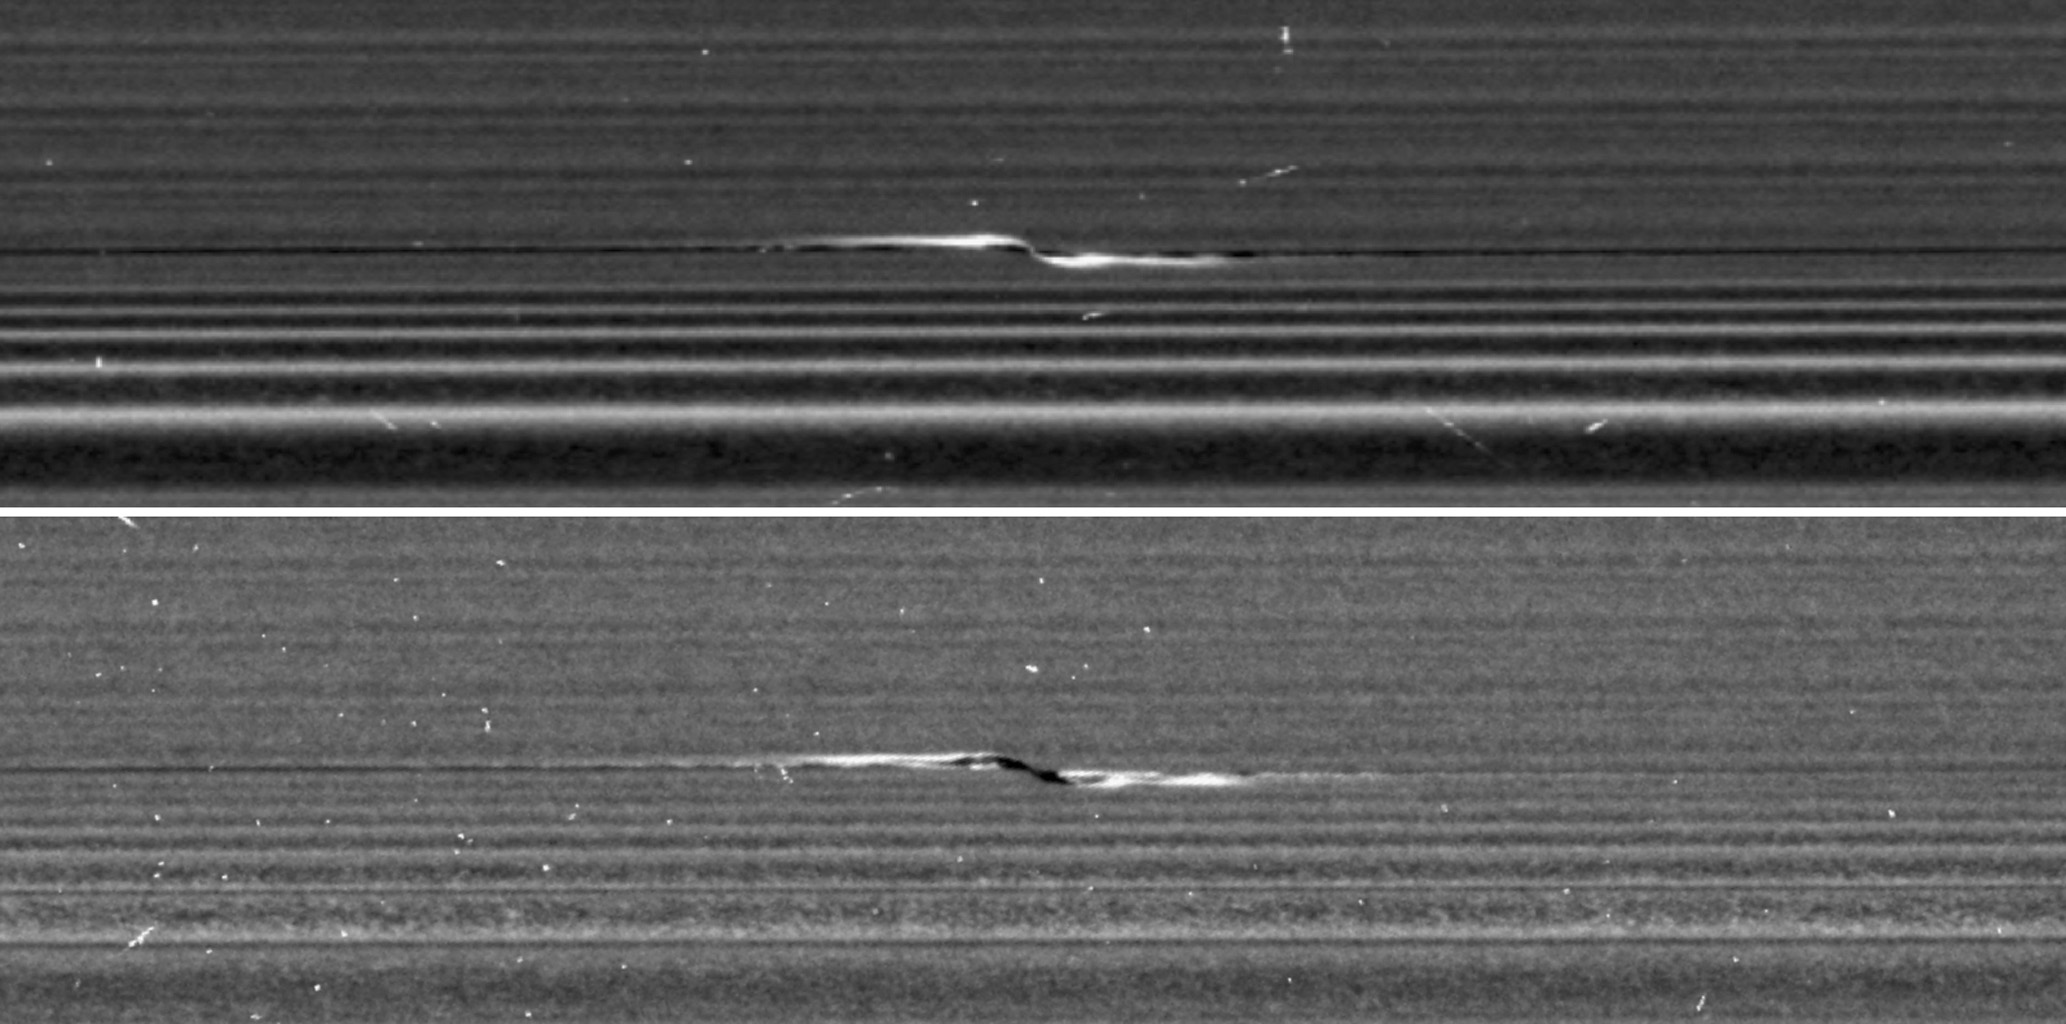 NASA's Cassini spacecraft captured these remarkable views of a propeller feature in Saturn's A ring on Feb. 21, 2017. These are the sharpest images taken of a propeller (nickedname 'Santos-Dumond') so far.